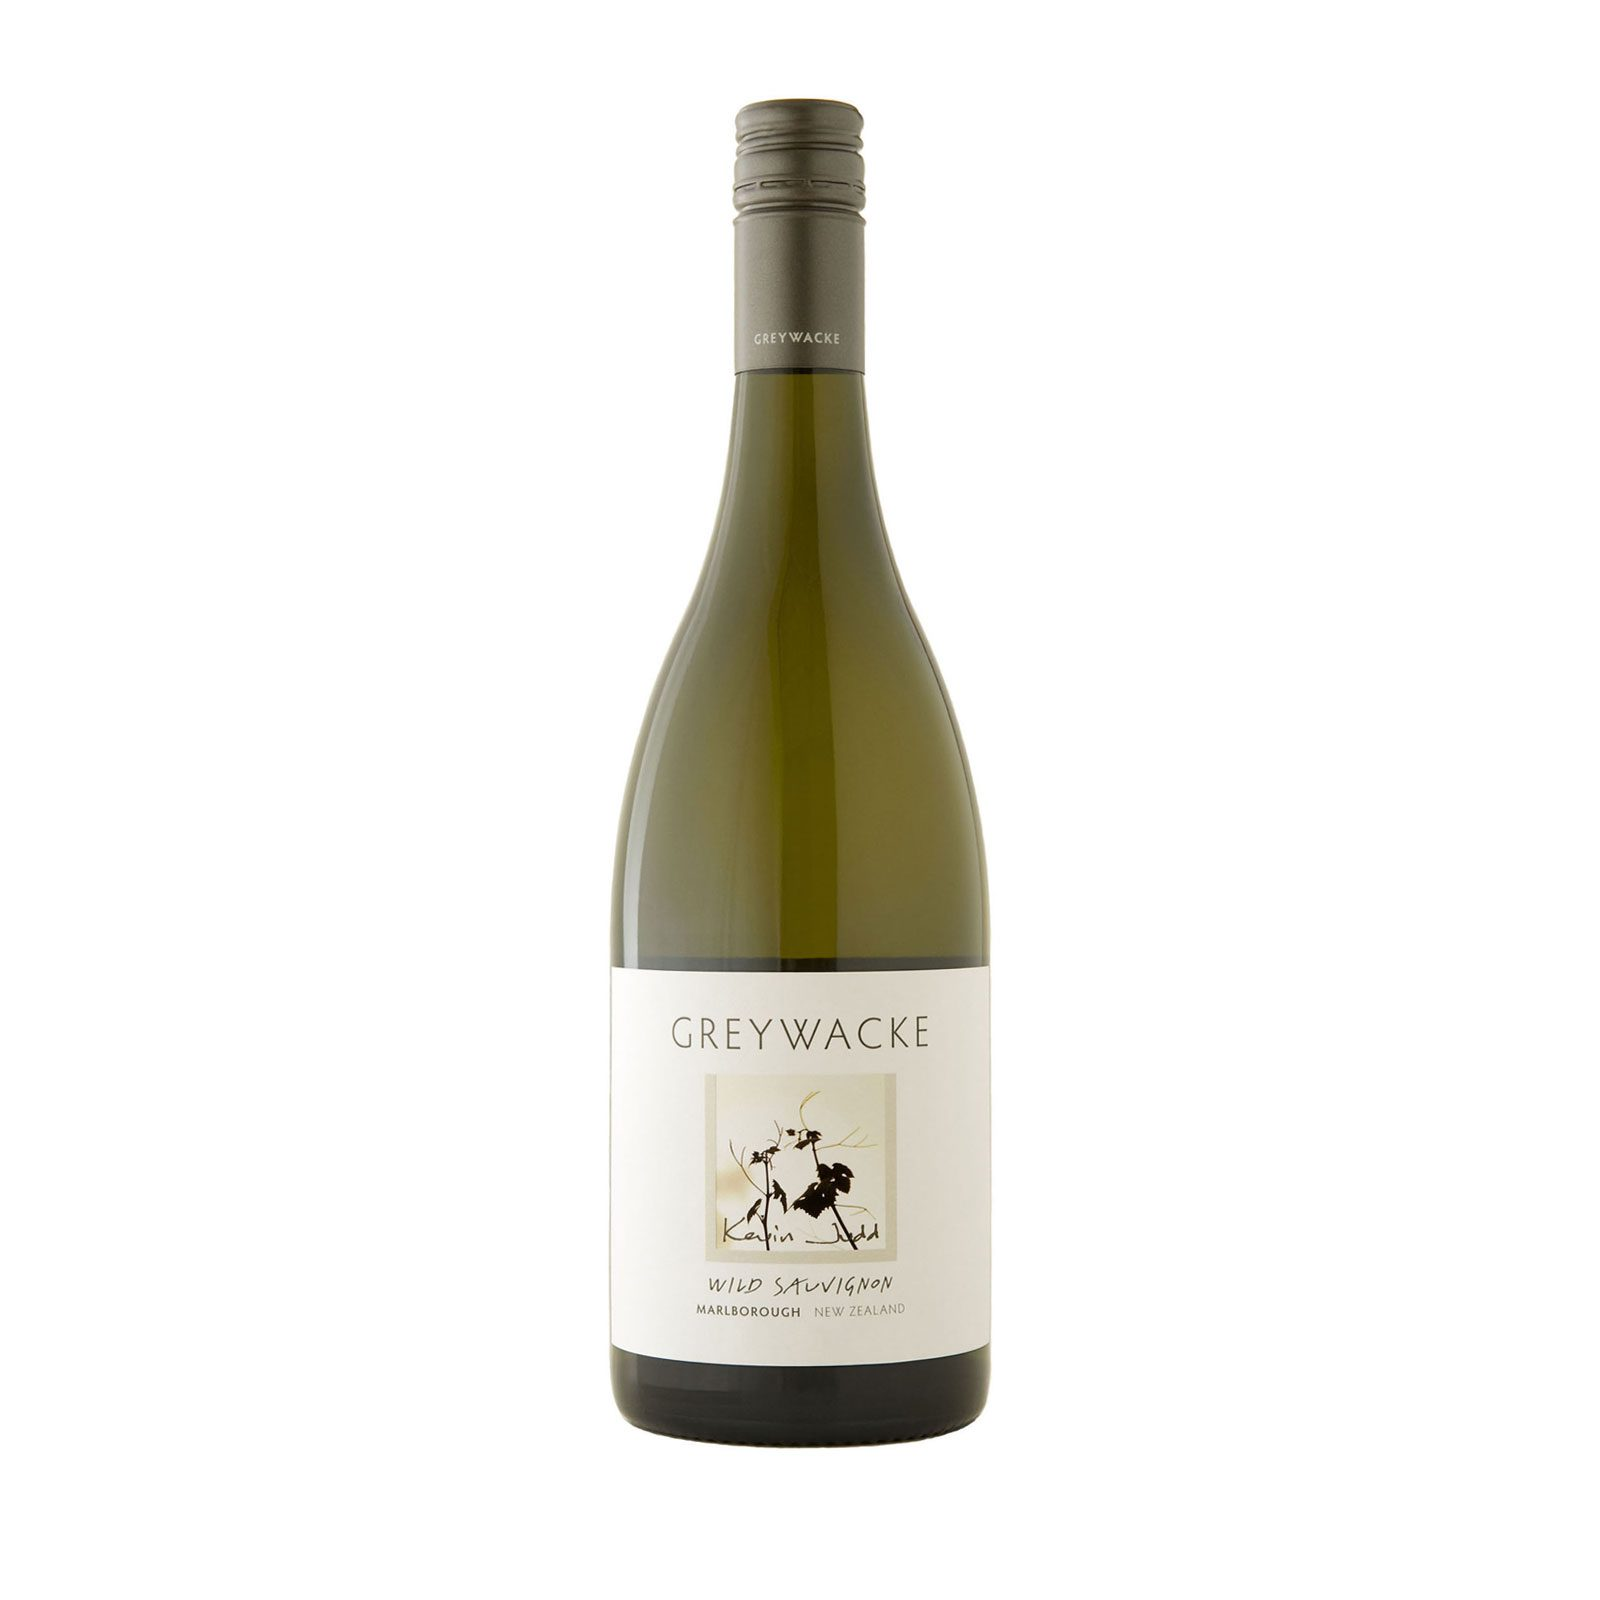 products-wild-sauvignon-a